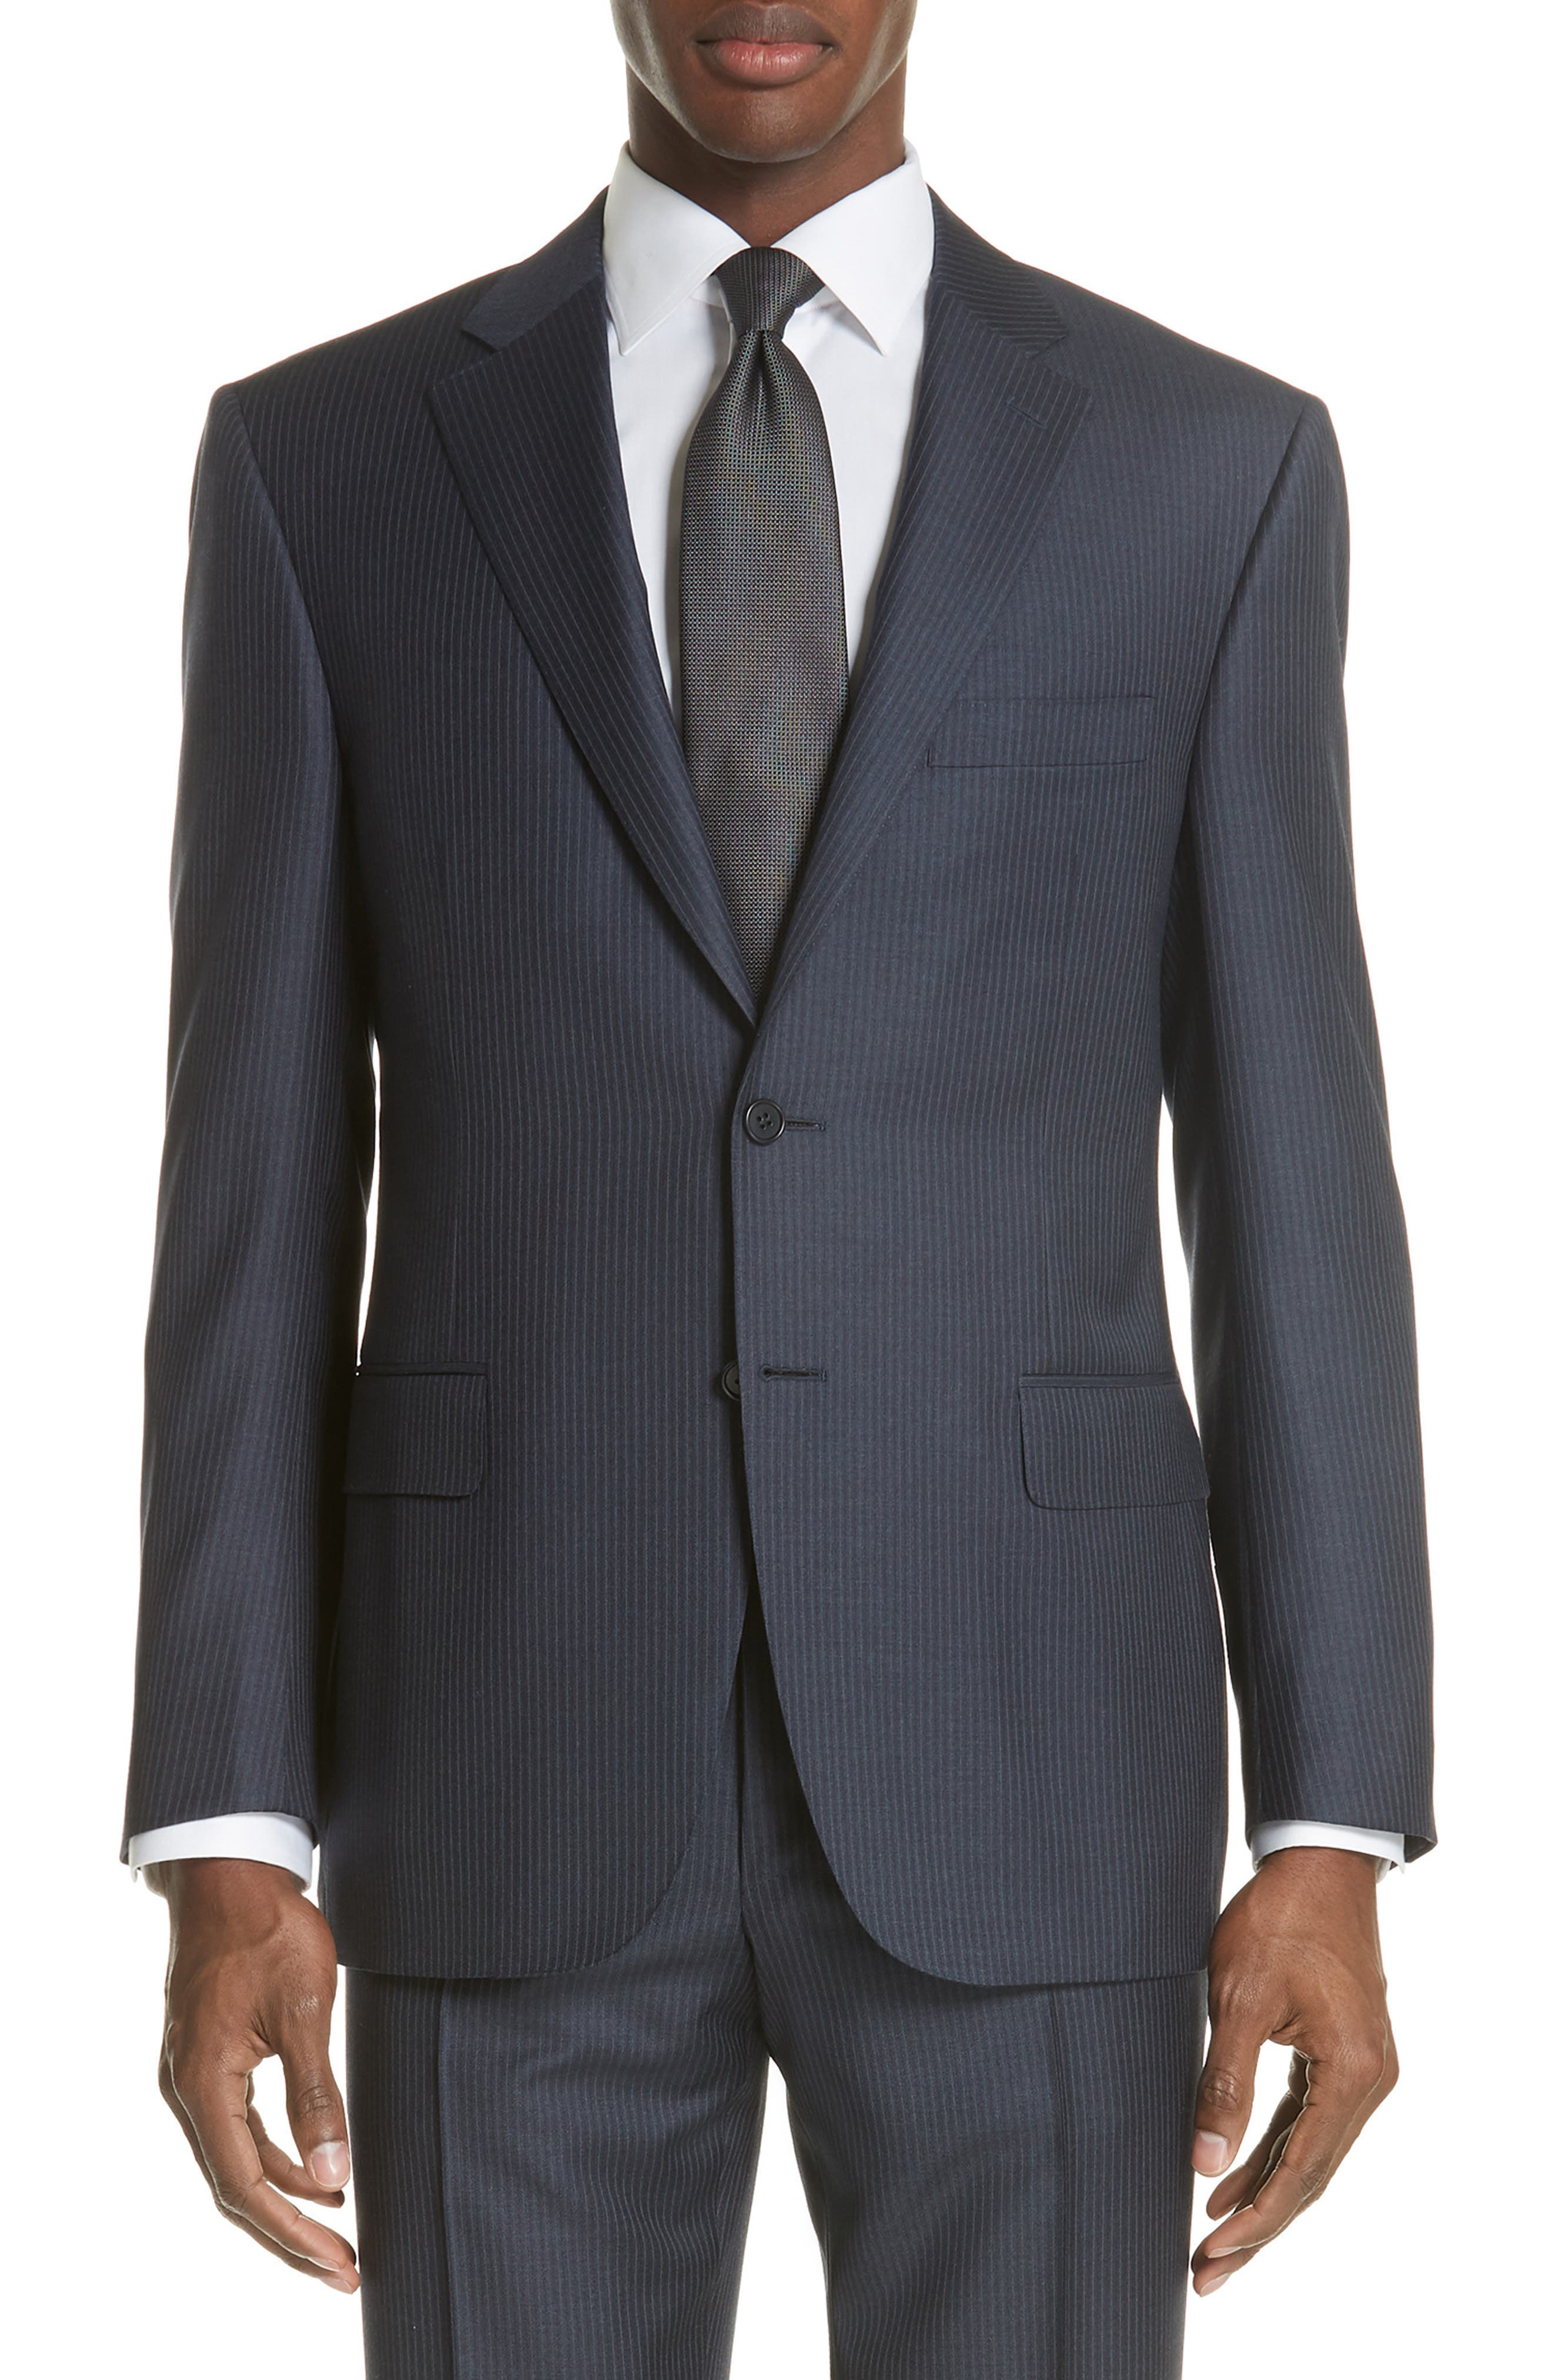 CANALI,                             Classic Fit Pinstripe Wool Suit,                             Alternate thumbnail 5, color,                             410